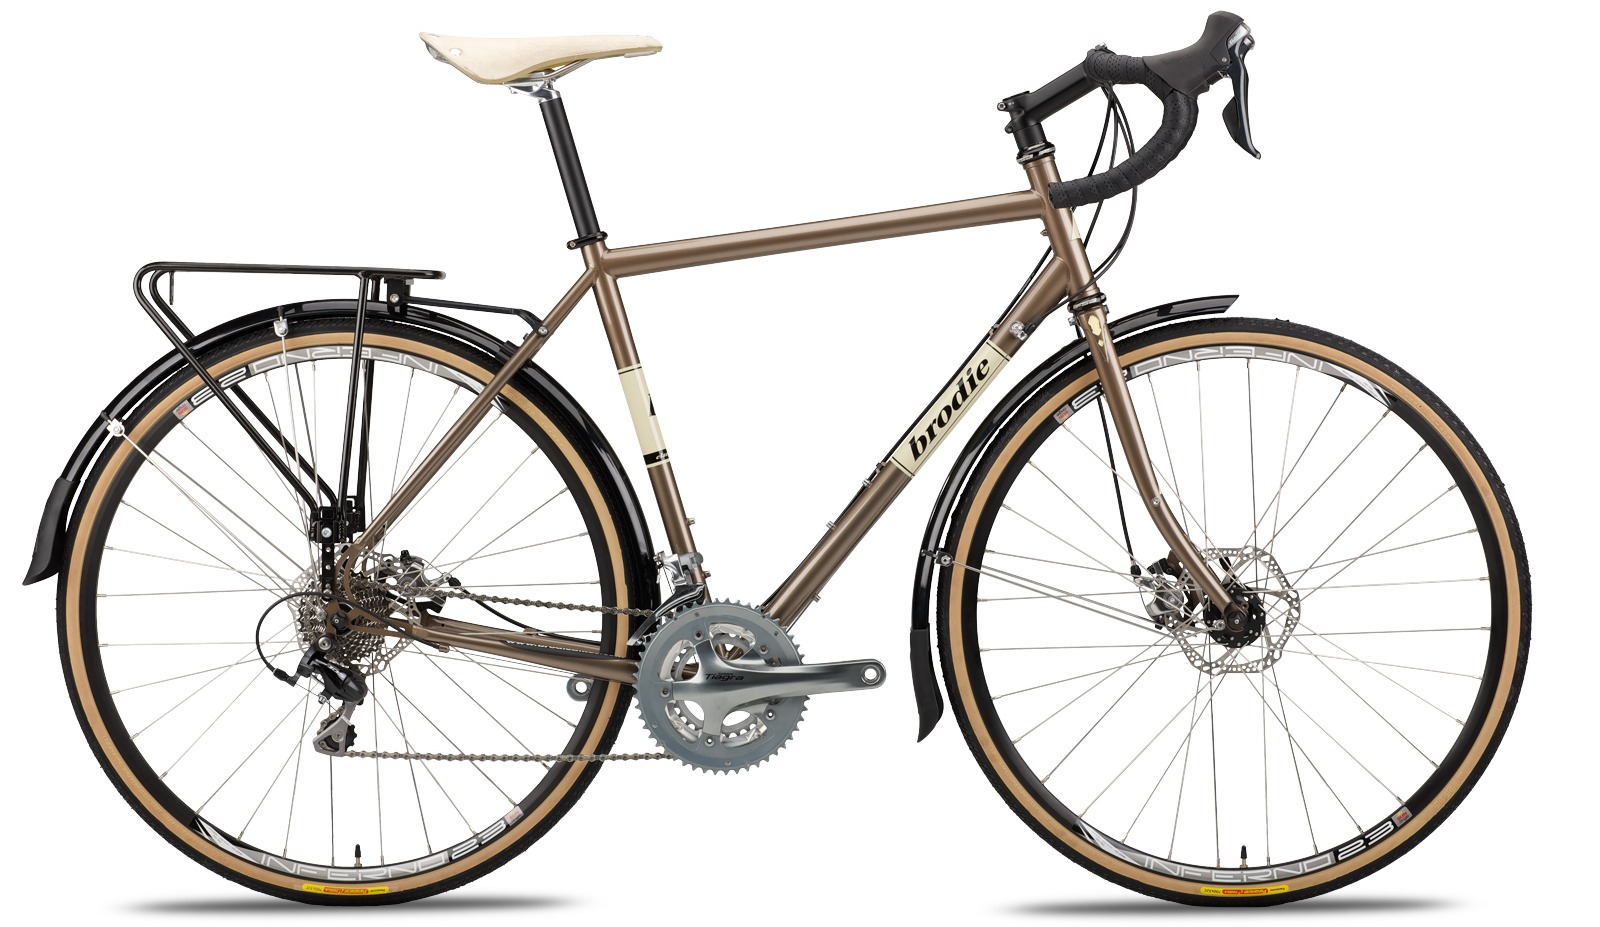 The New 2016 Brodie Elan Vital Touring Bike Cyclingabout